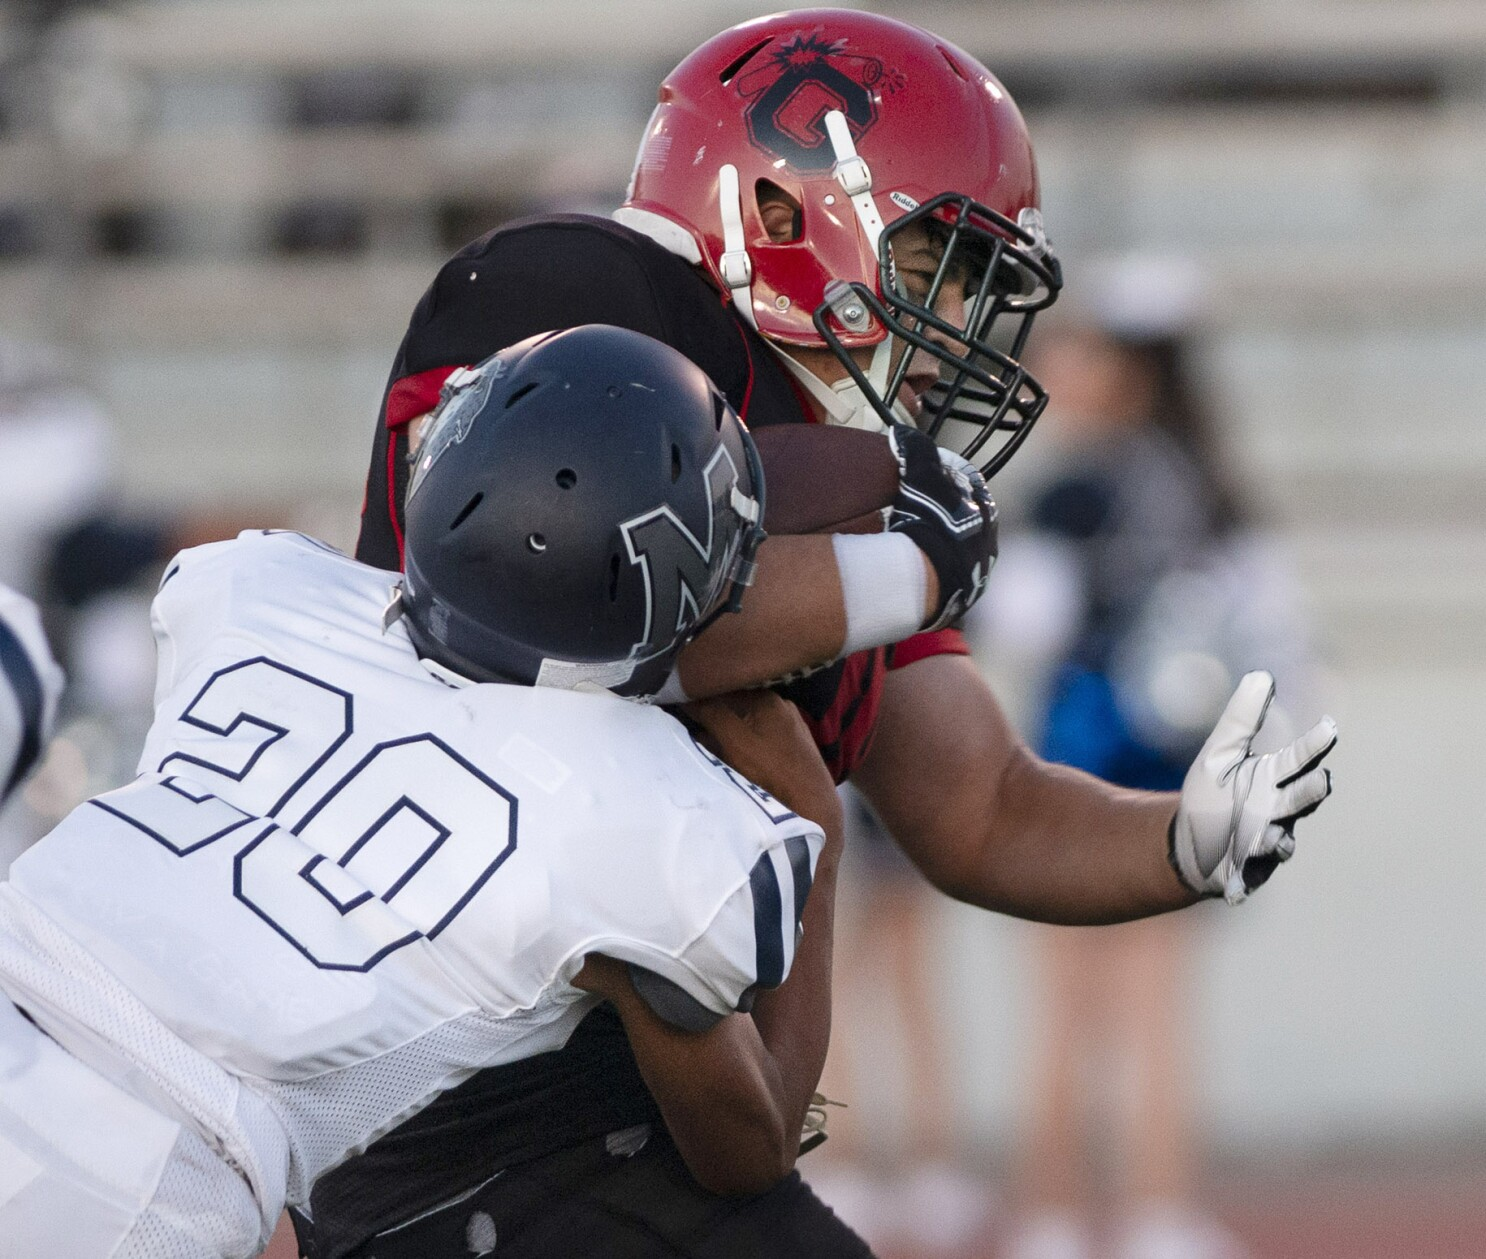 Defense leads Glendale High to season-opening victory